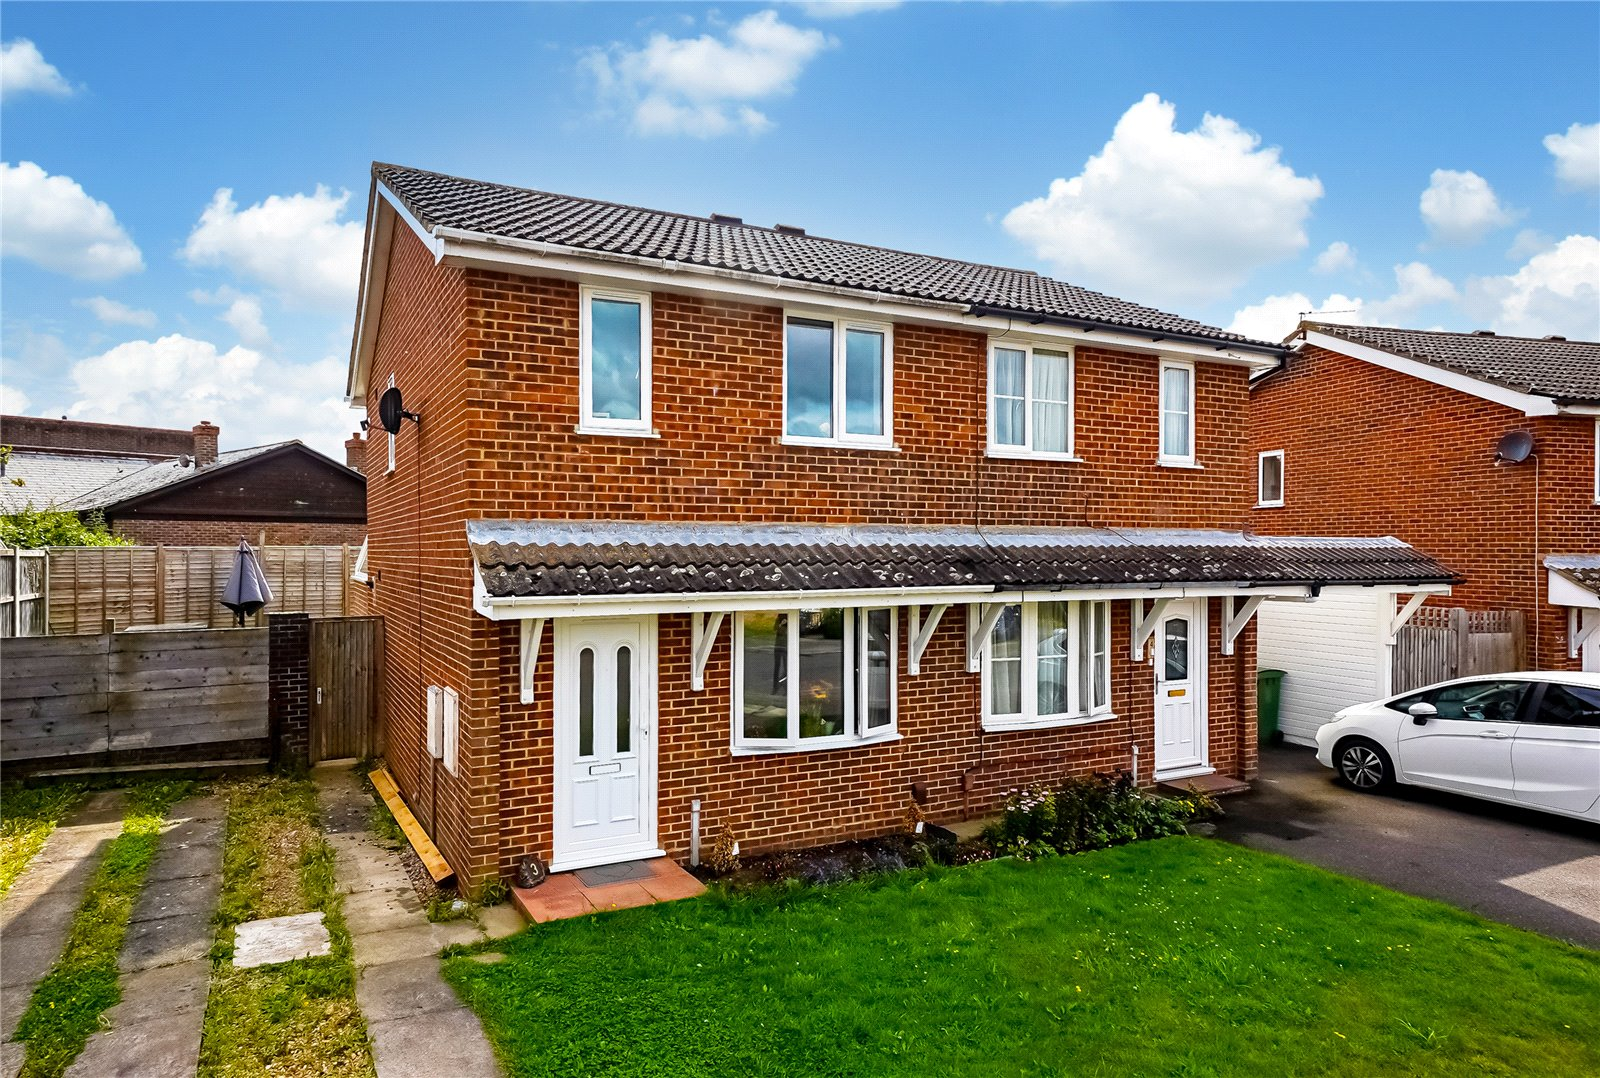 2 bed house for sale in Finglesham Court, Maidstone, ME15